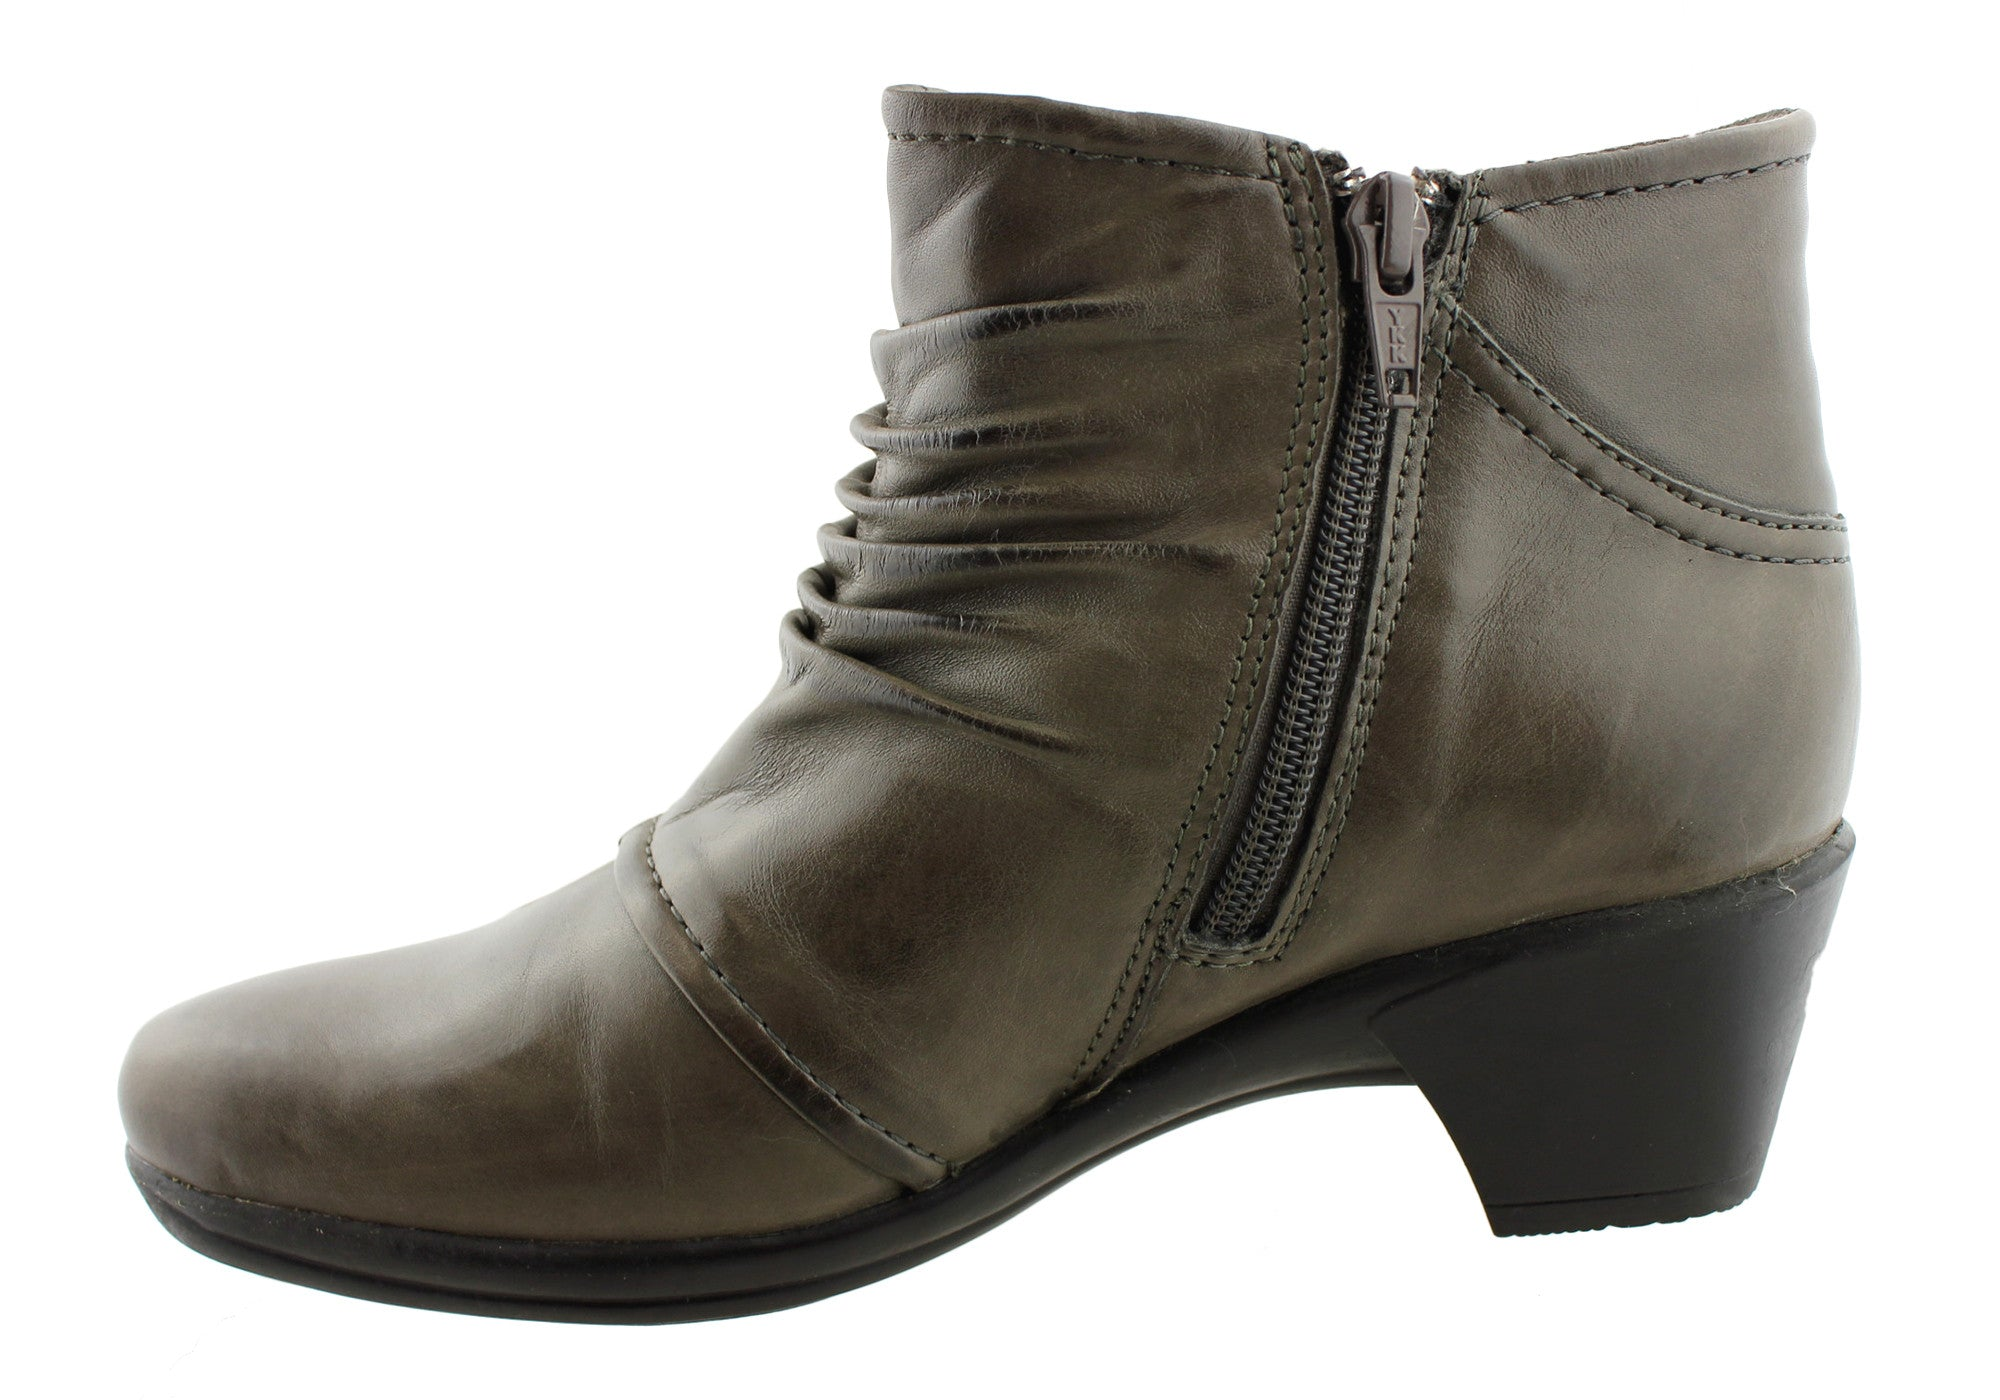 Planet Shoes Ashton Womens Leather Mid Heel Ankle Boots